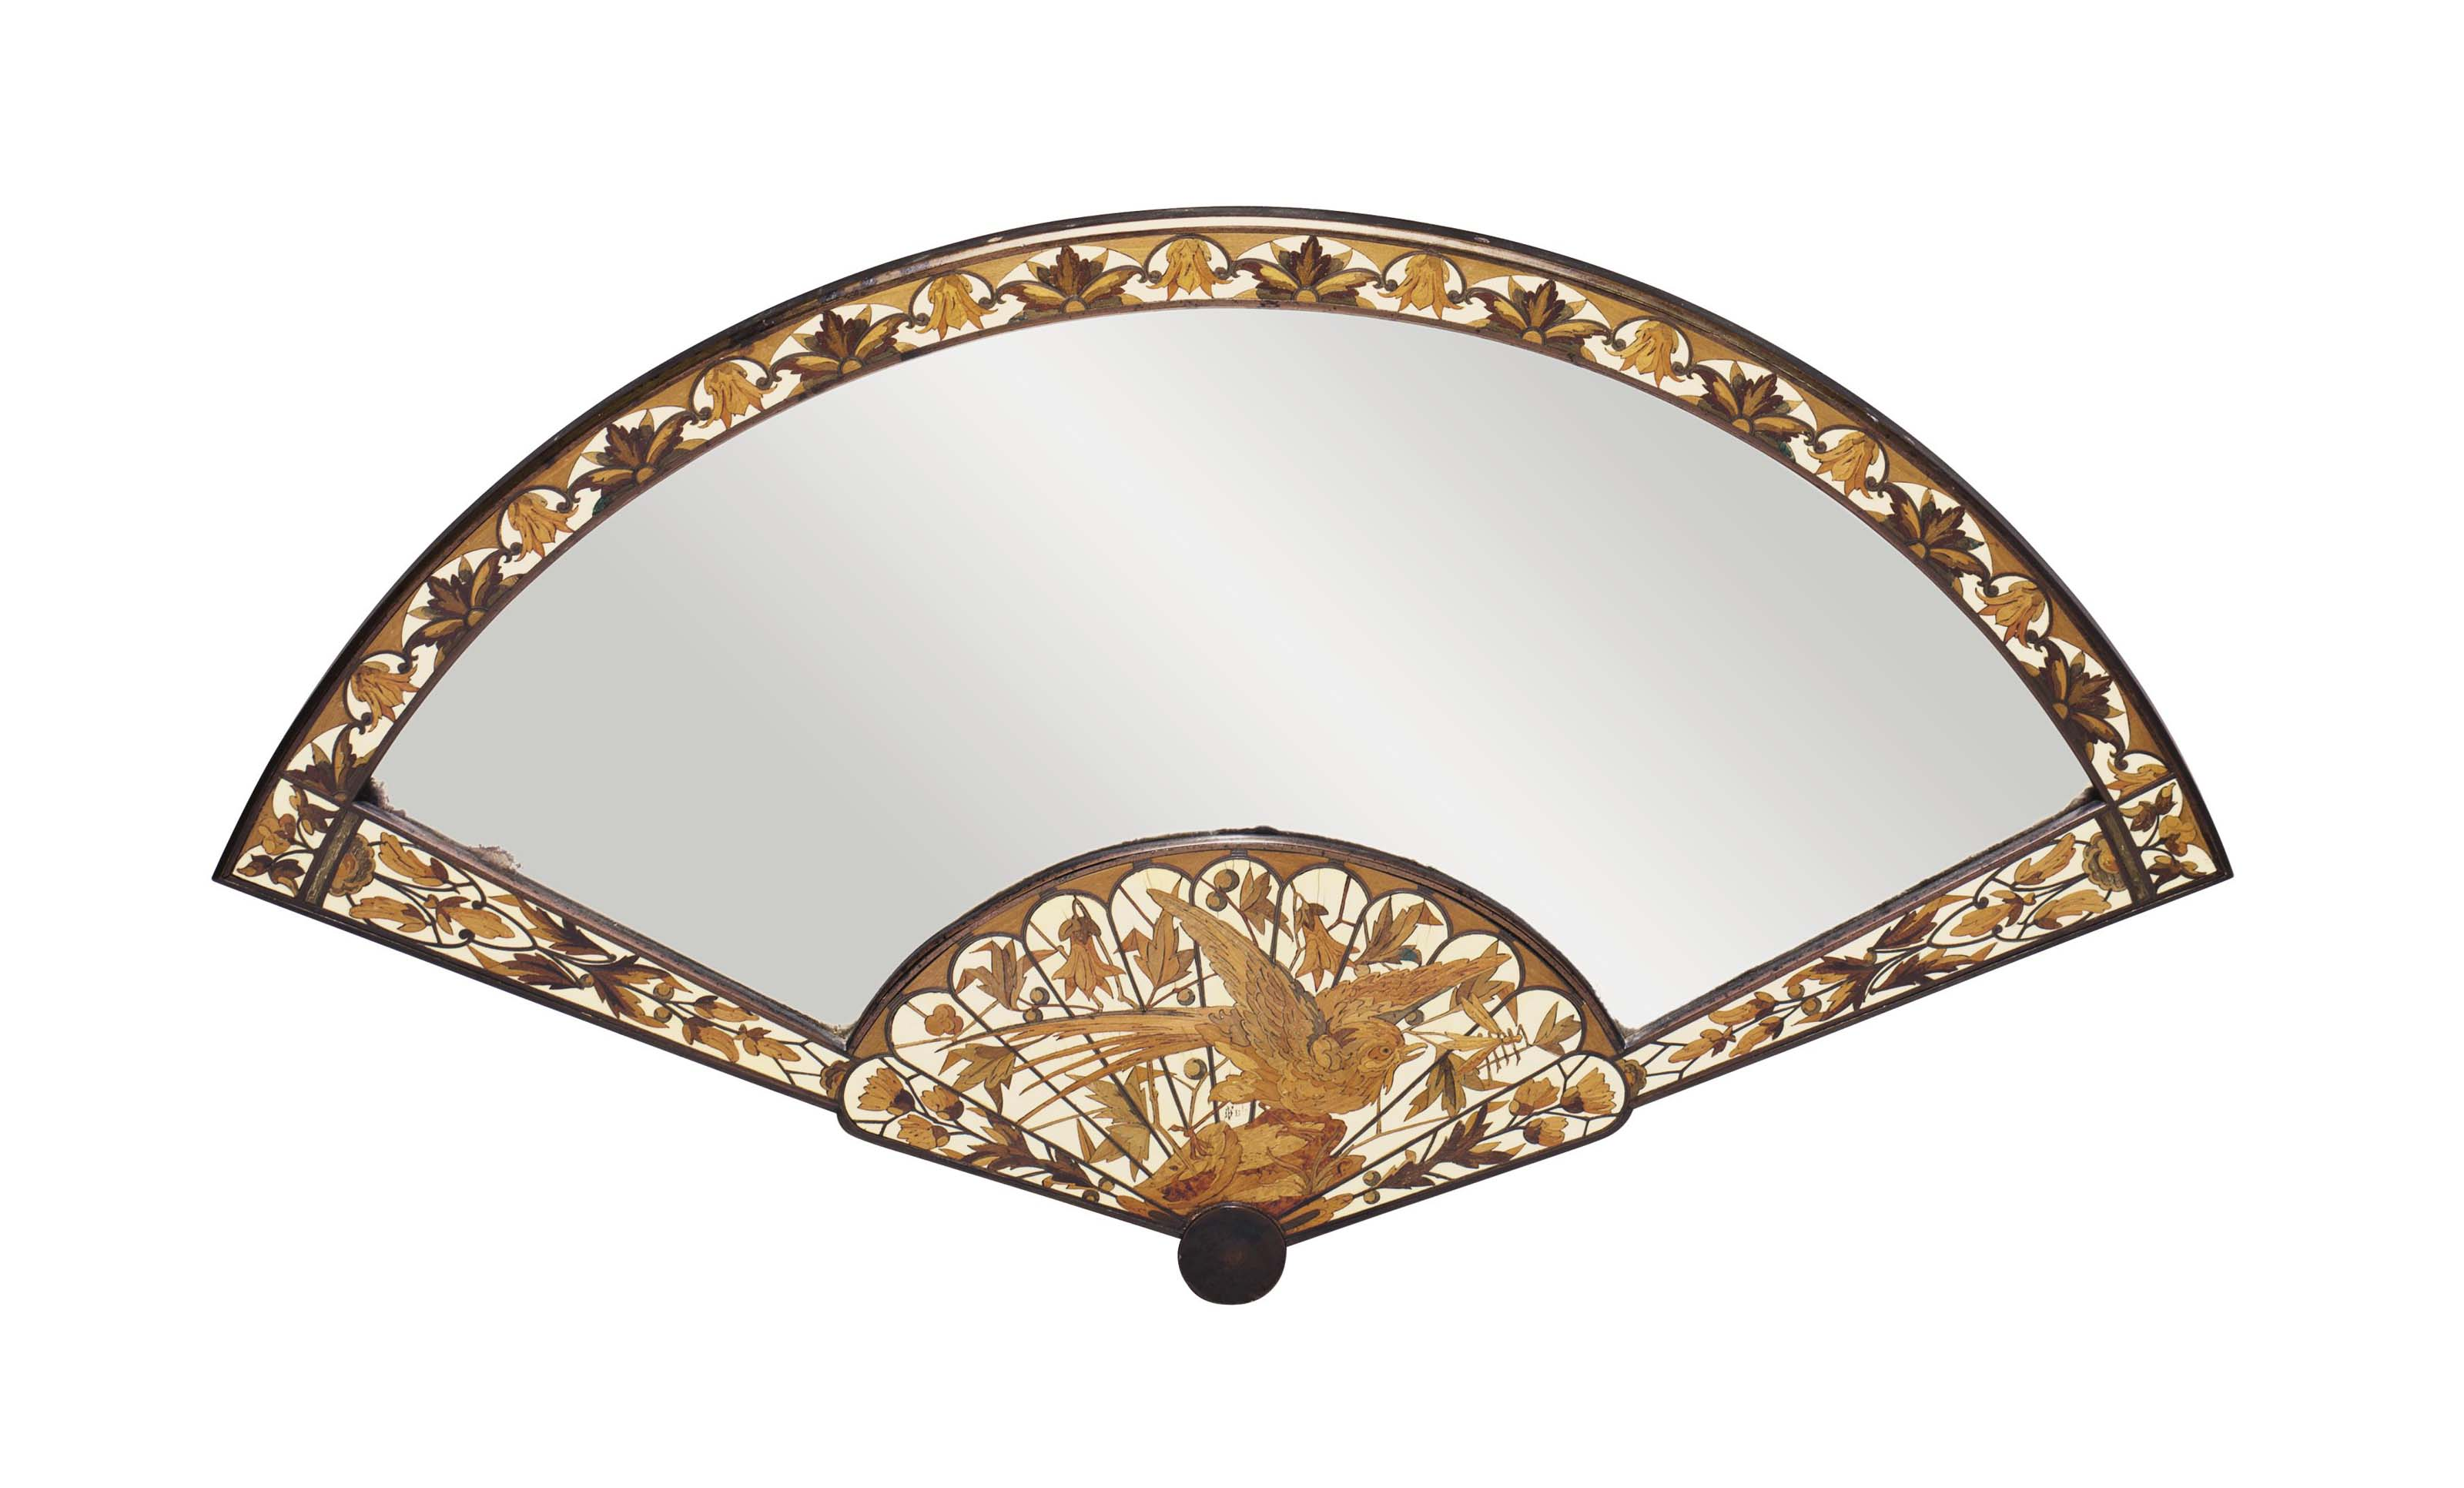 A FRENCH BRONZE, IVORY AND STAINED FRUITWOOD MARQUETRY TABLE MIRROR